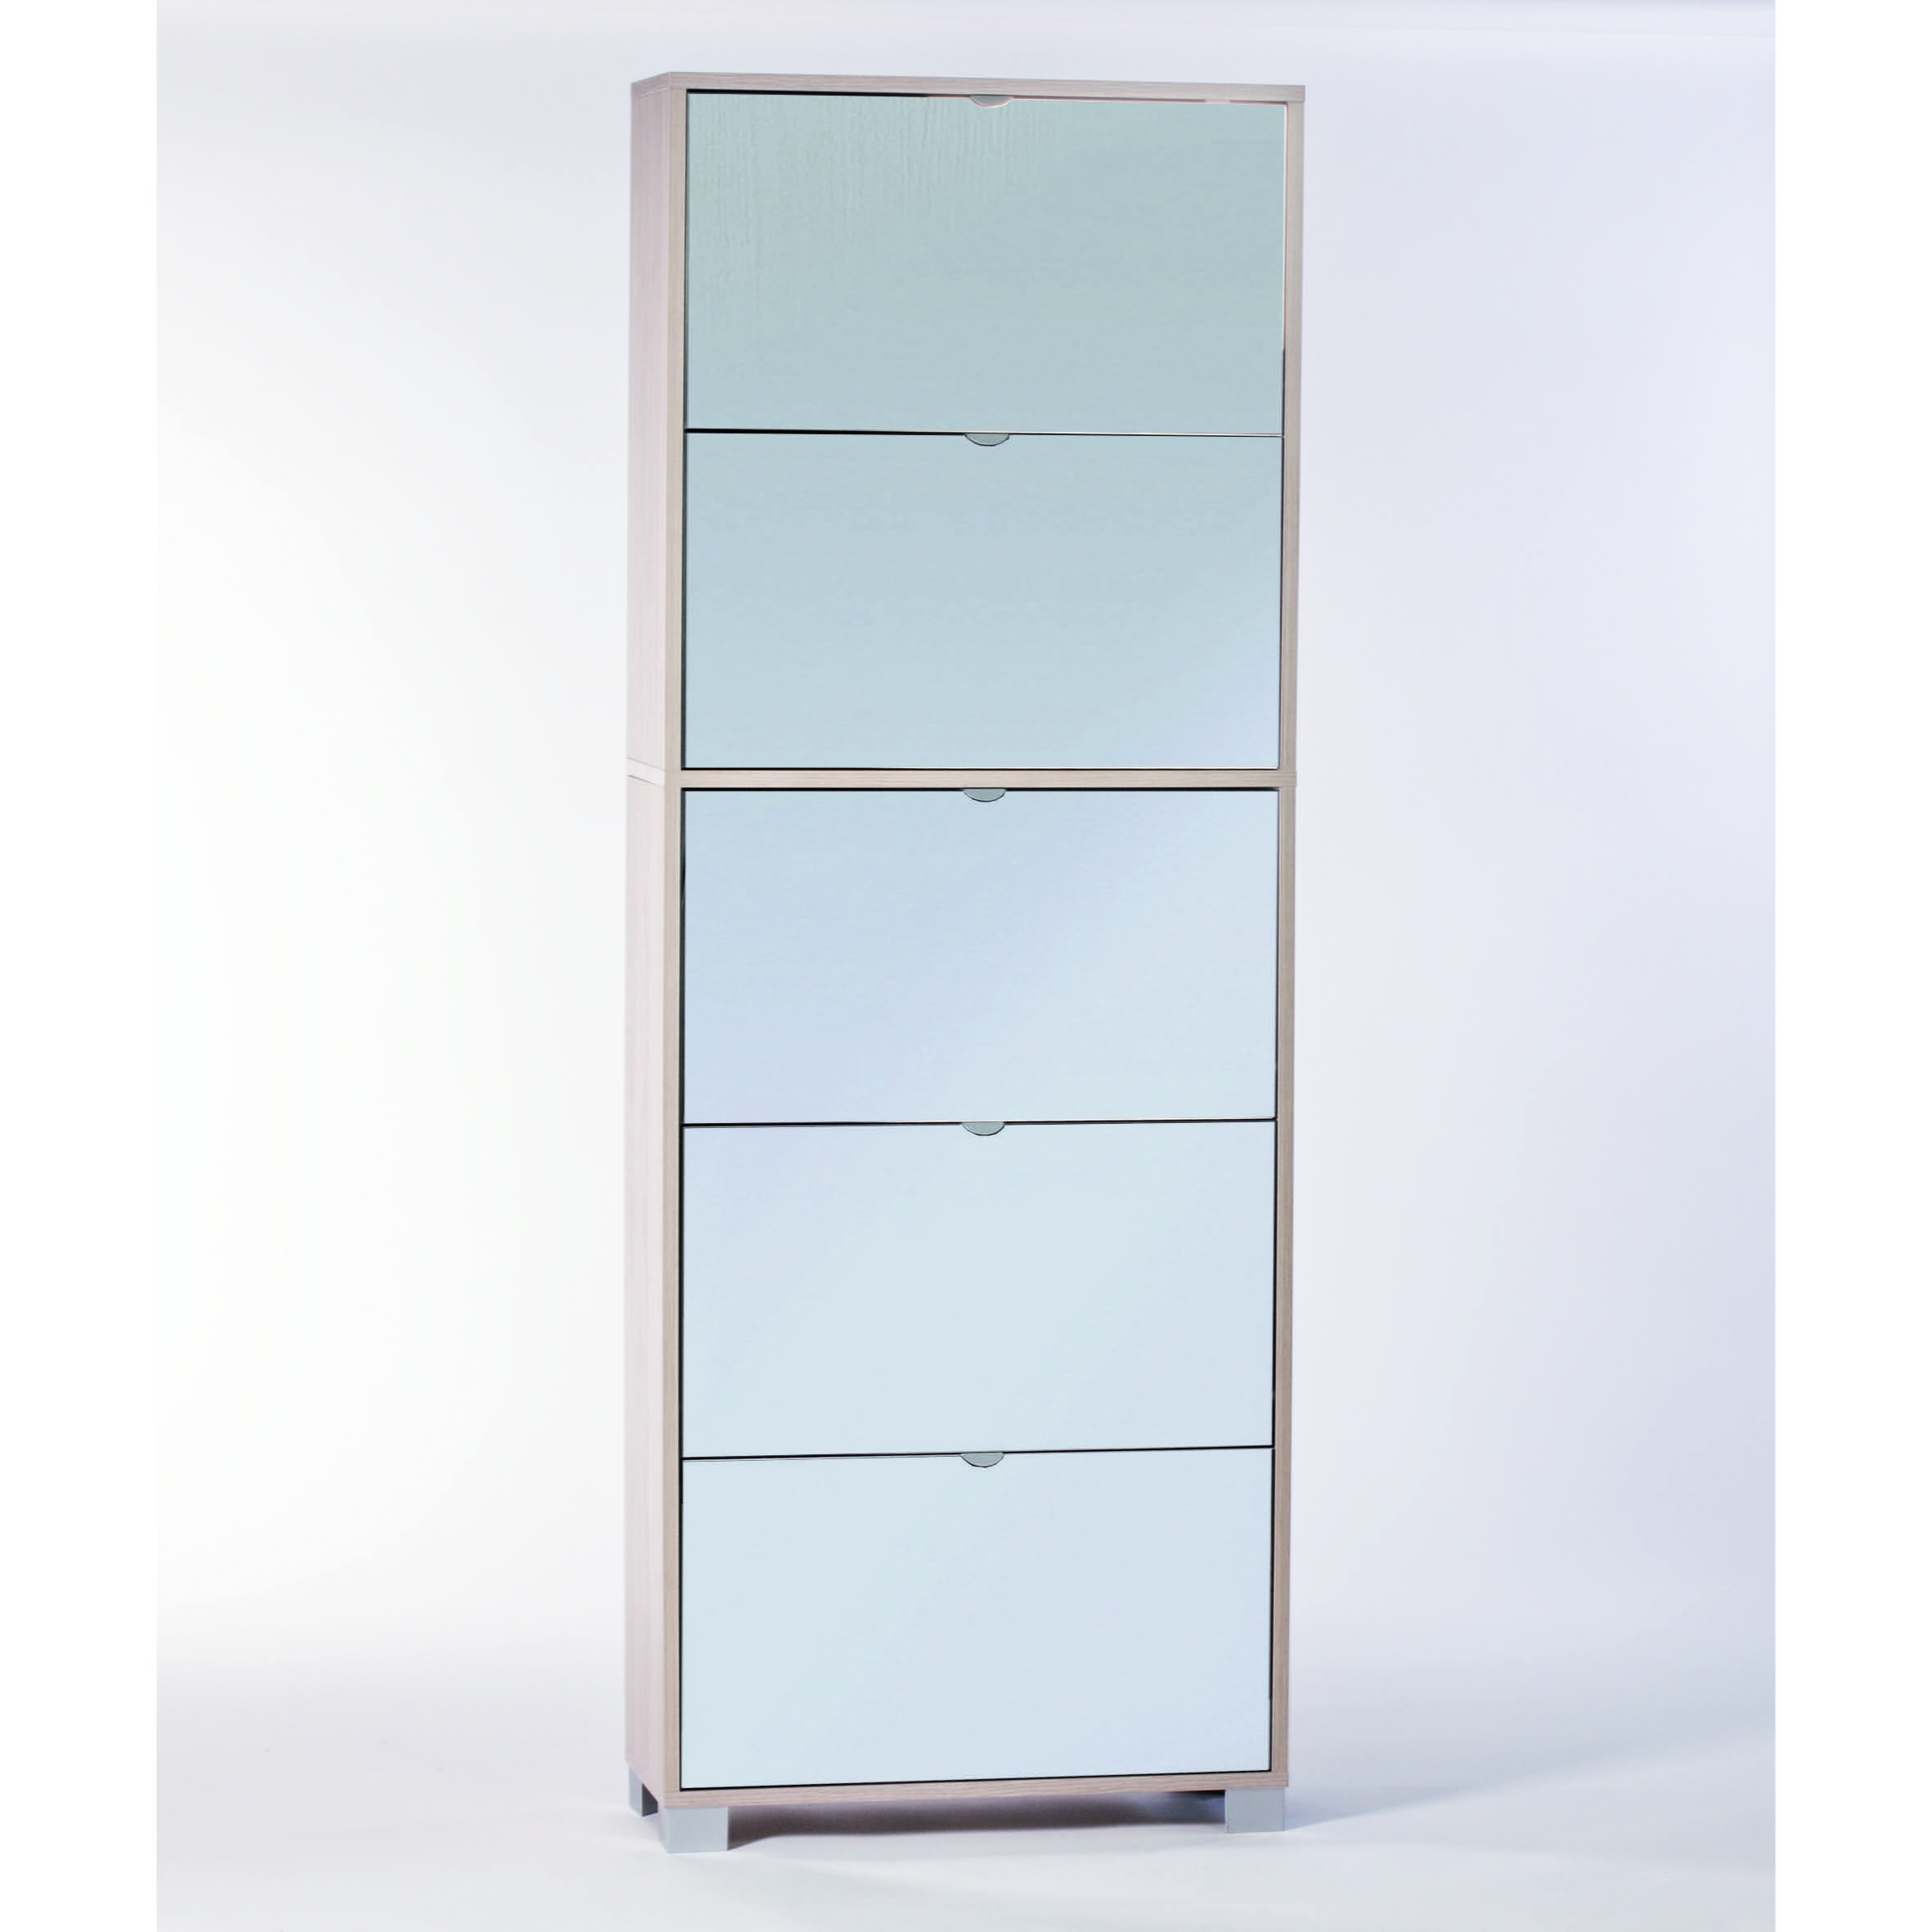 Sarmog A765sp Shoe Rack Collection 76 X 28 Inch With 5 Double Depth